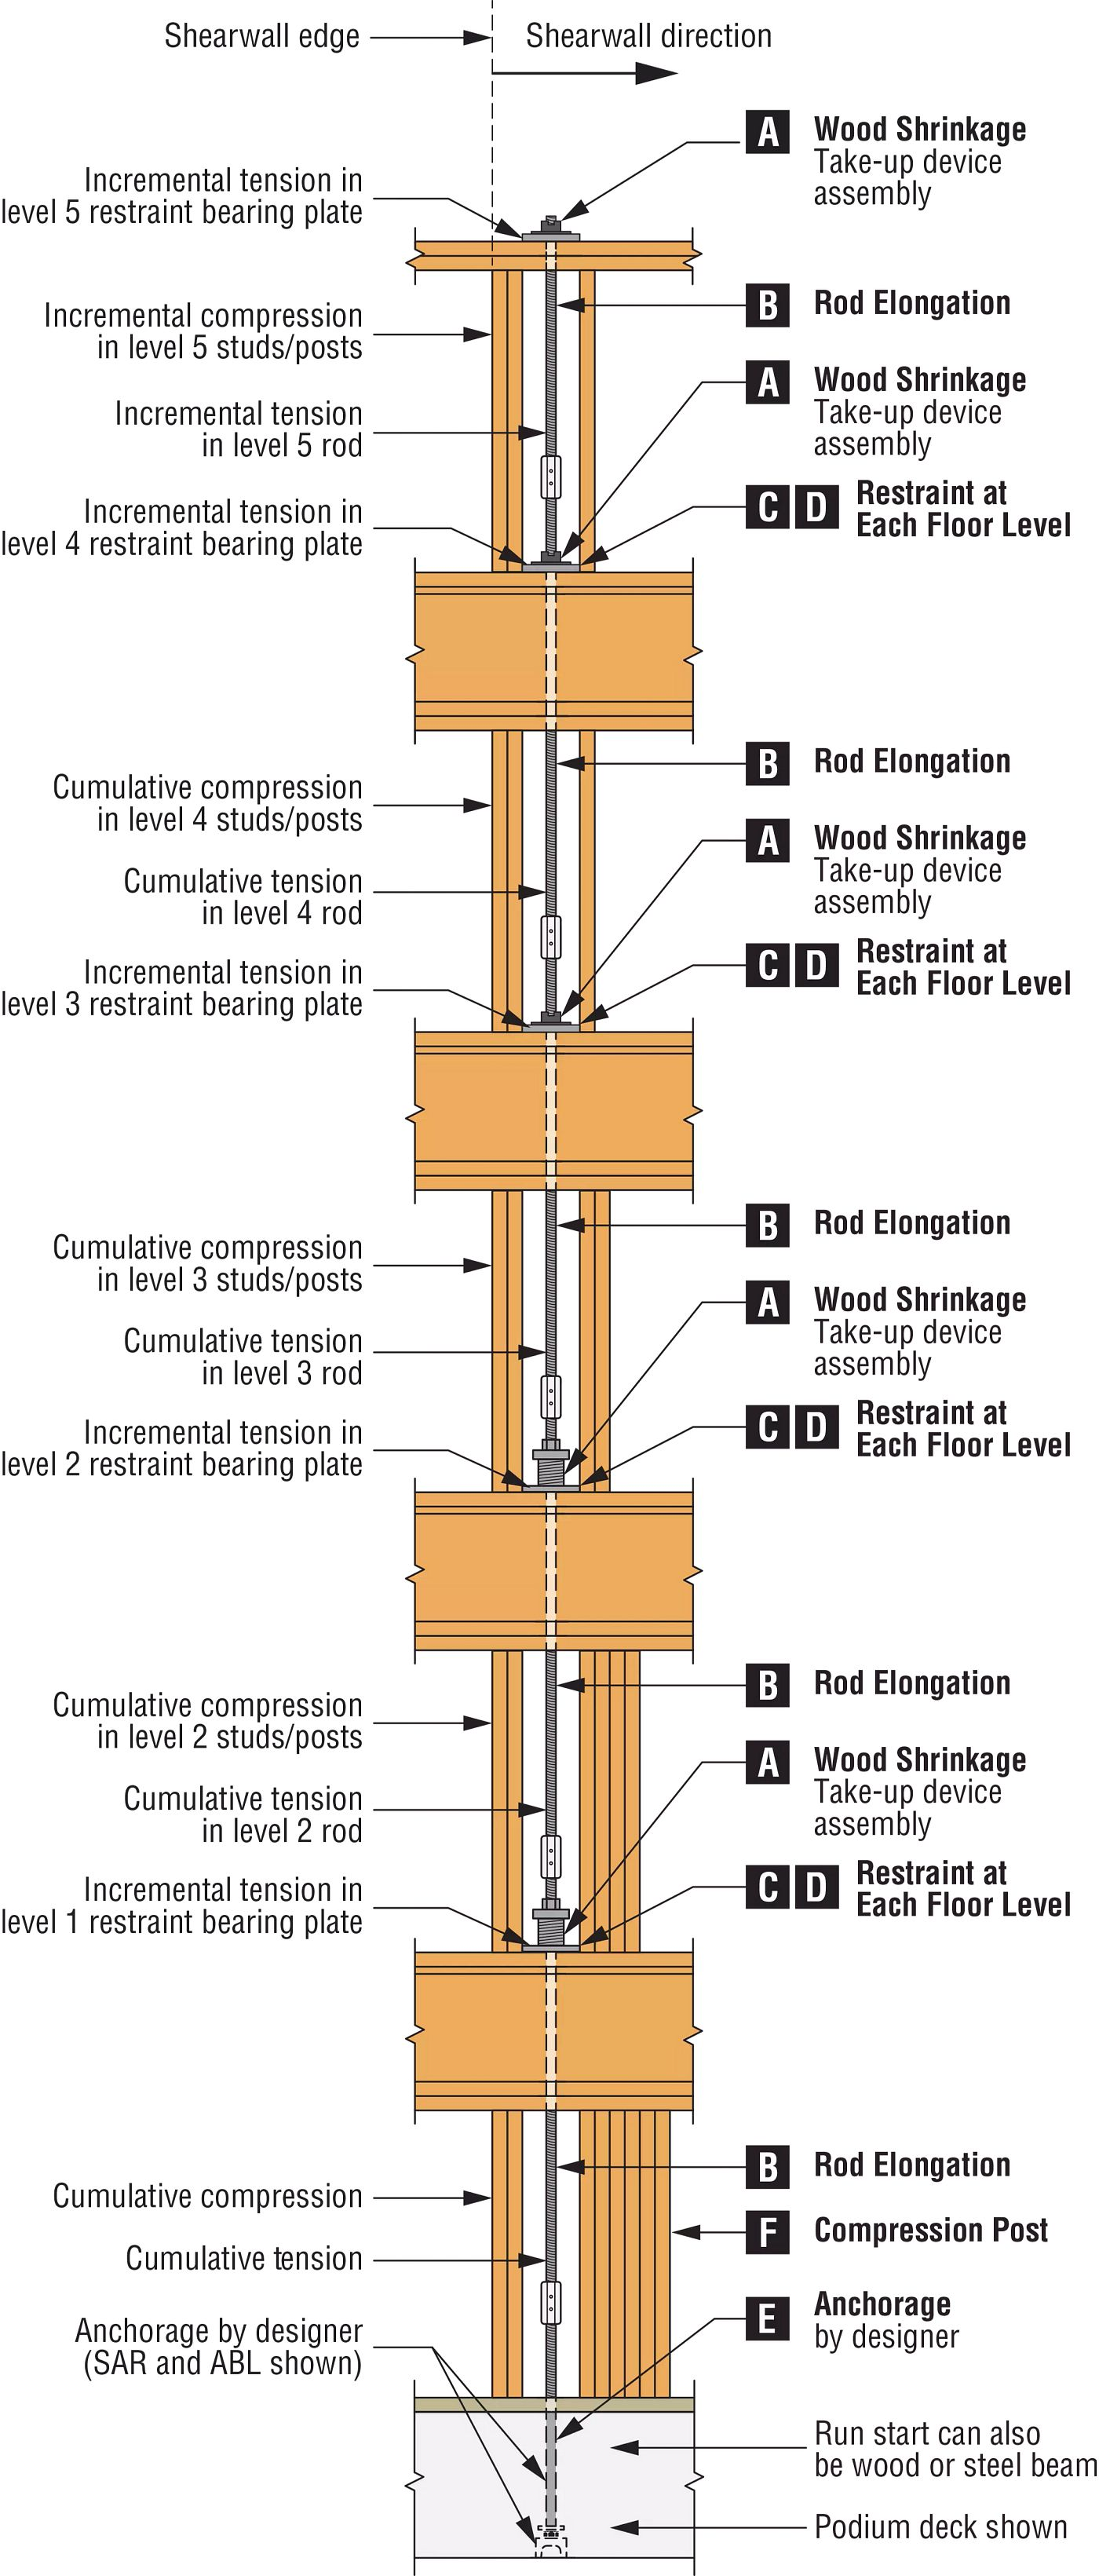 Key Considerations for Designing an Anchor Tiedown System for Shearwall Overturning Restraint